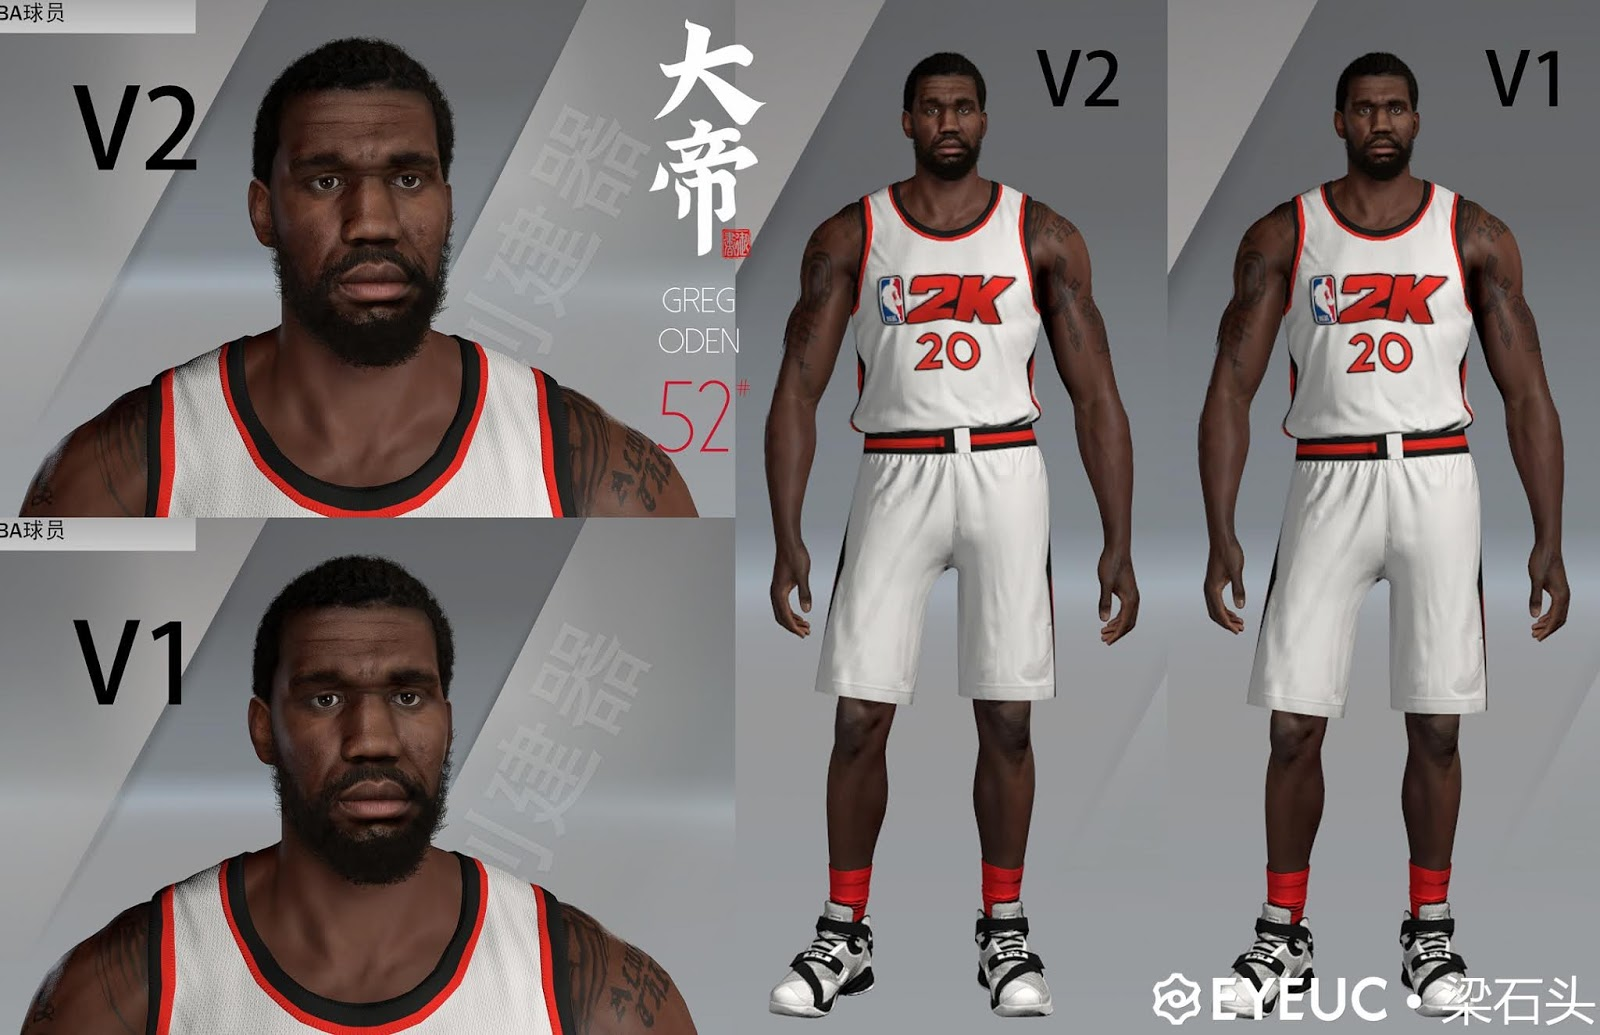 Greg Oden Is Trying To Find Himself After A Failed Basketball Career